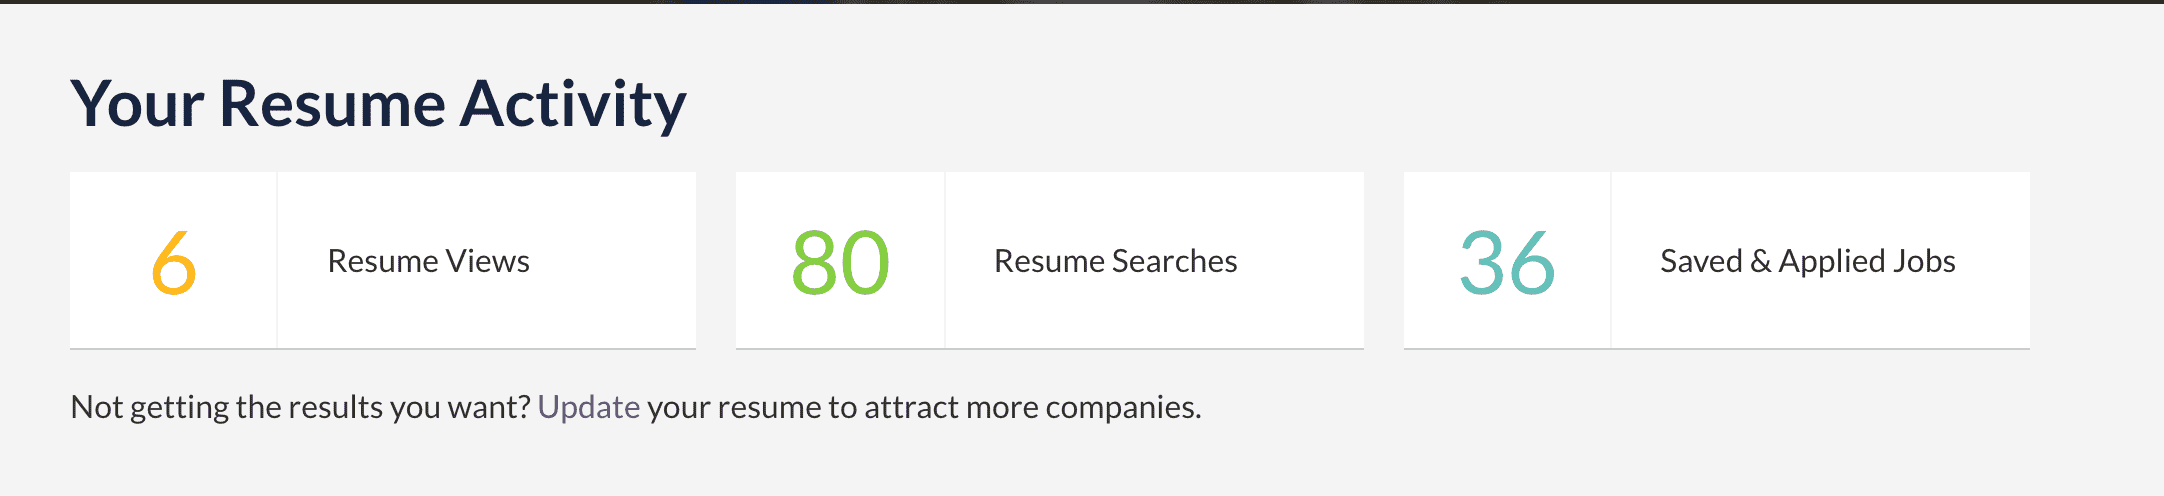 by clicking on the resume views button they can see which specific companies have opened their resumes